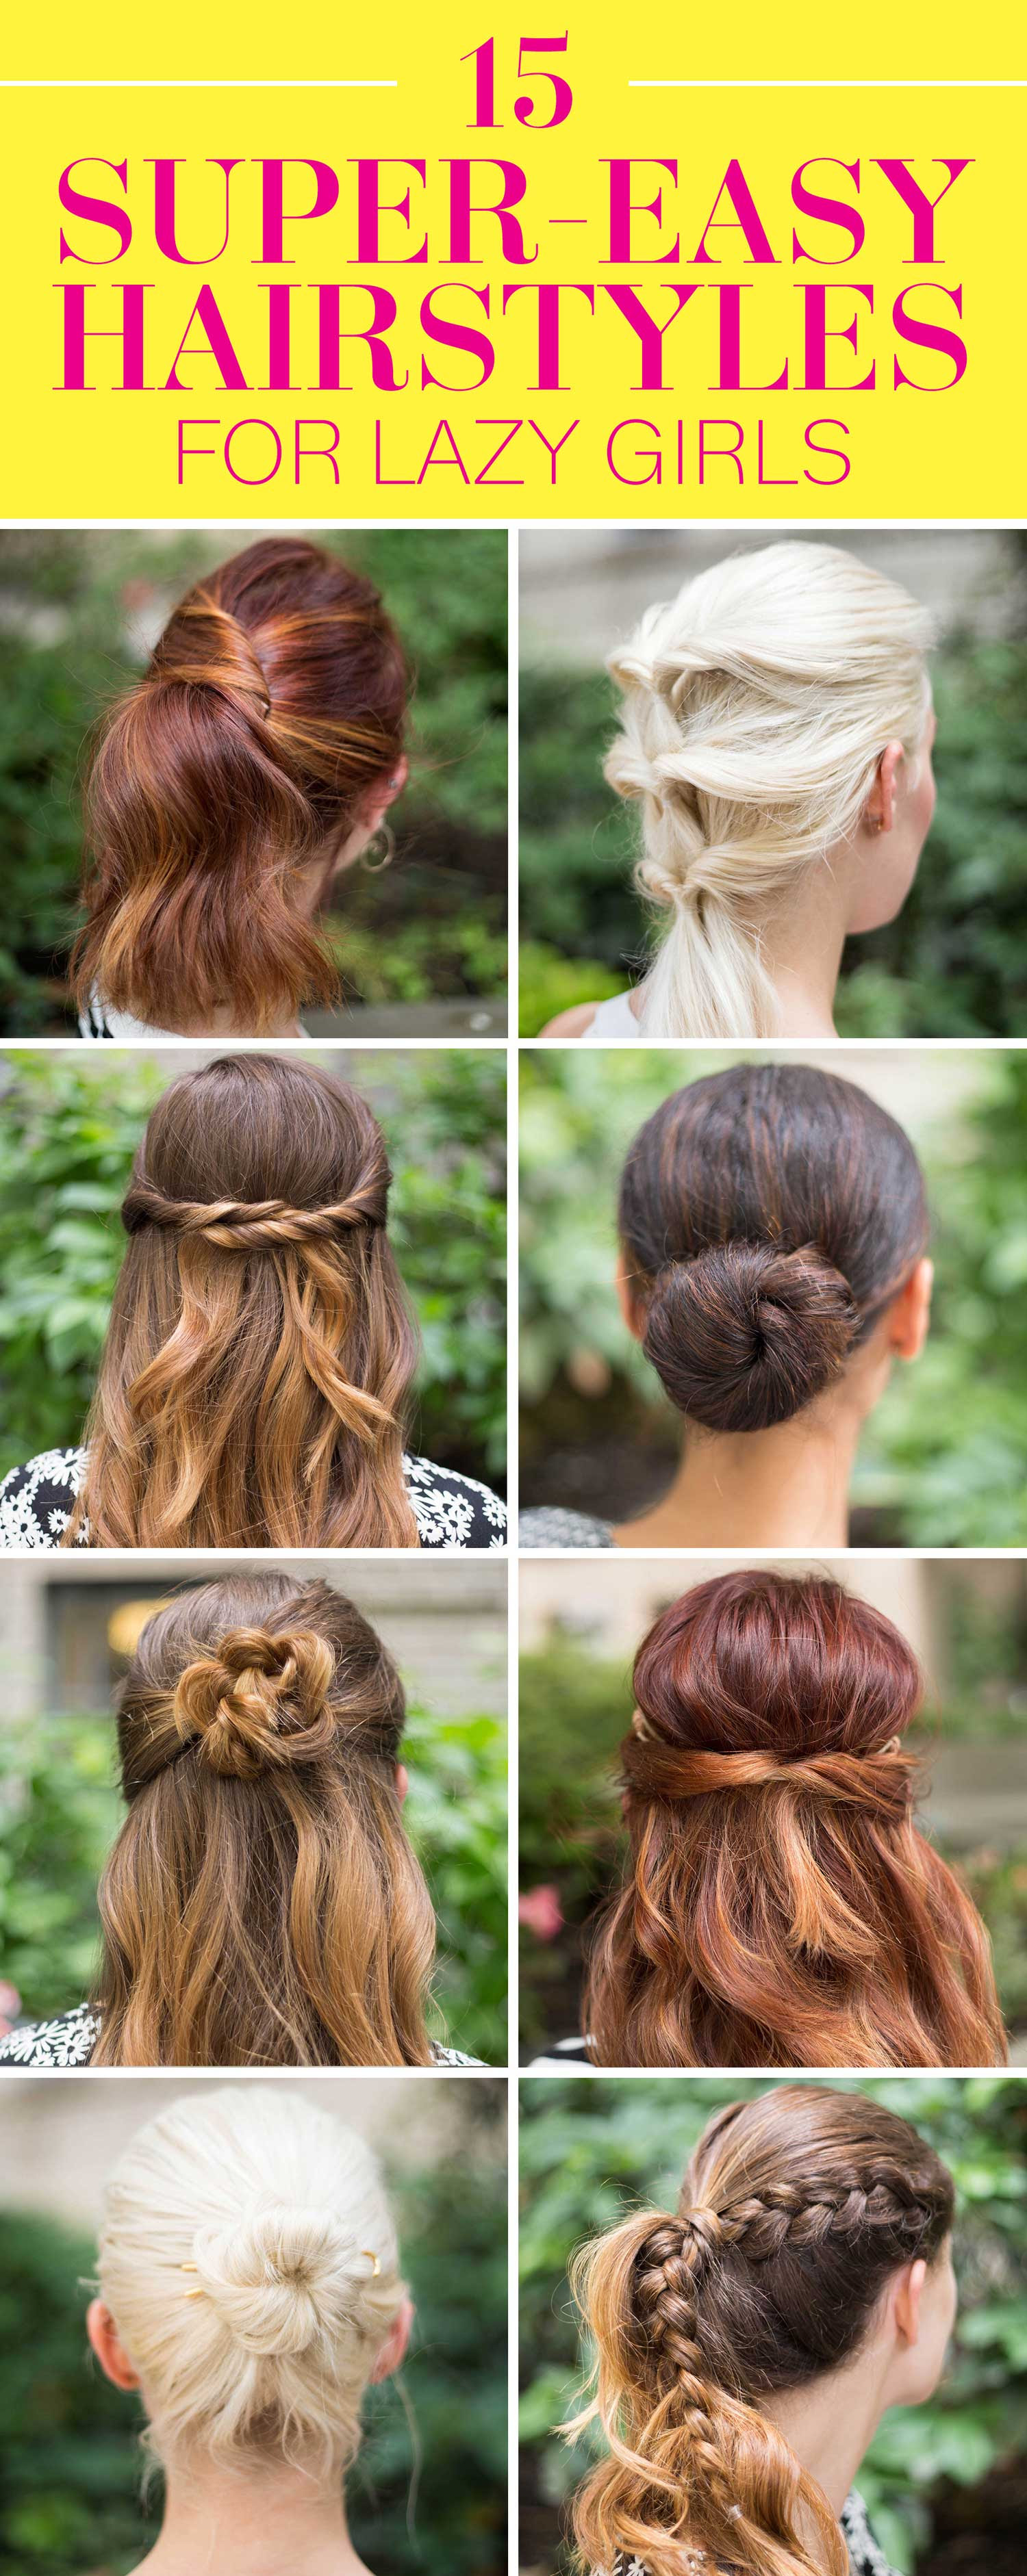 15 Super Easy Hairstyles for Girls in 2016 - Three Step ...